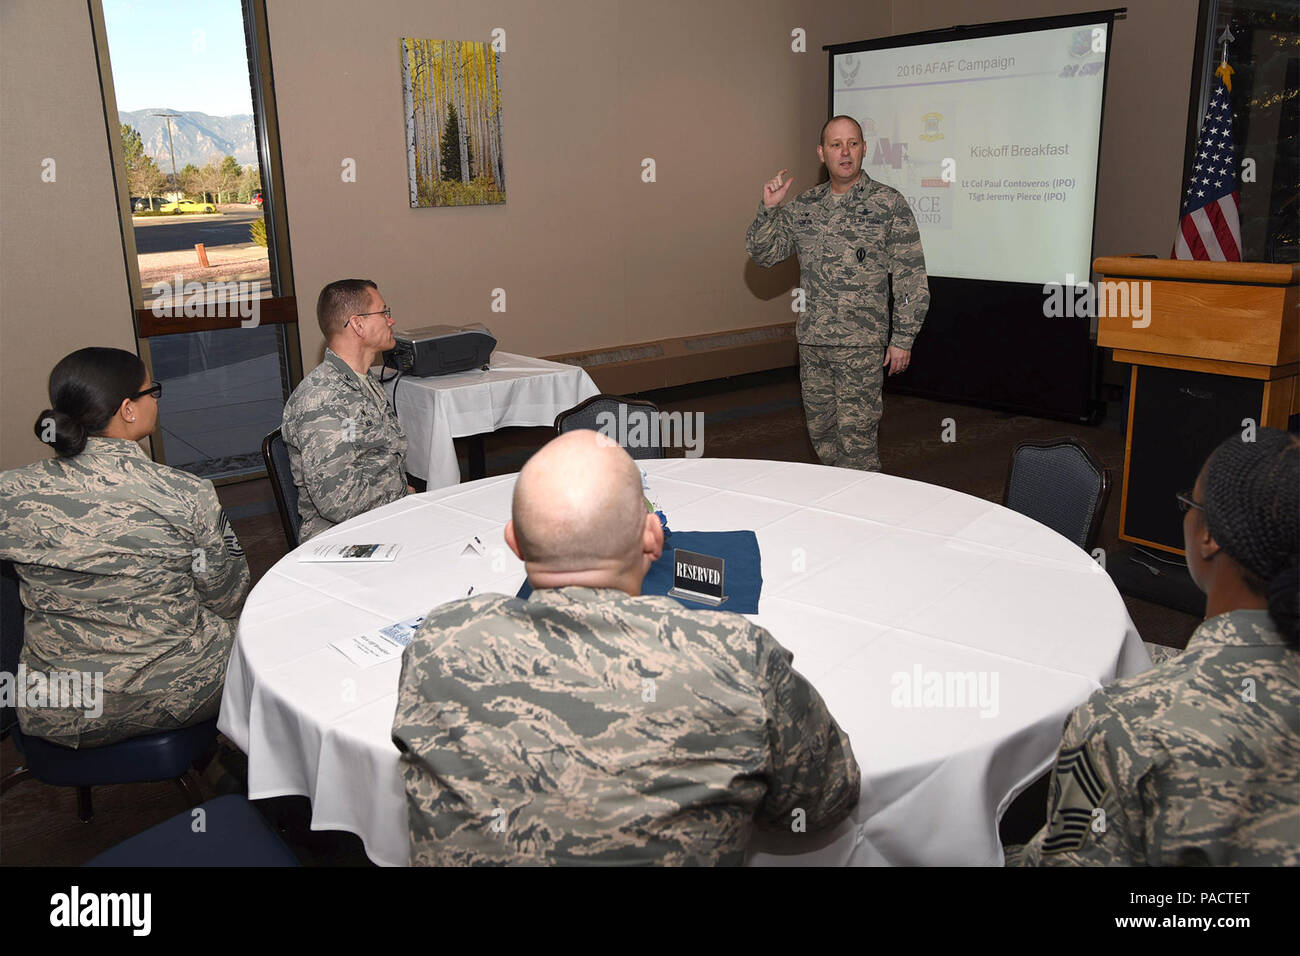 Col. Douglas Schiess, 21st SPace Wing commander, discusses the importance of the Air Force Assistance Fund during the kick off breakfast at the Peterson Club on March 17, 2016. The AFAF mission is to raise funds to support the Air Force family. - Stock Image